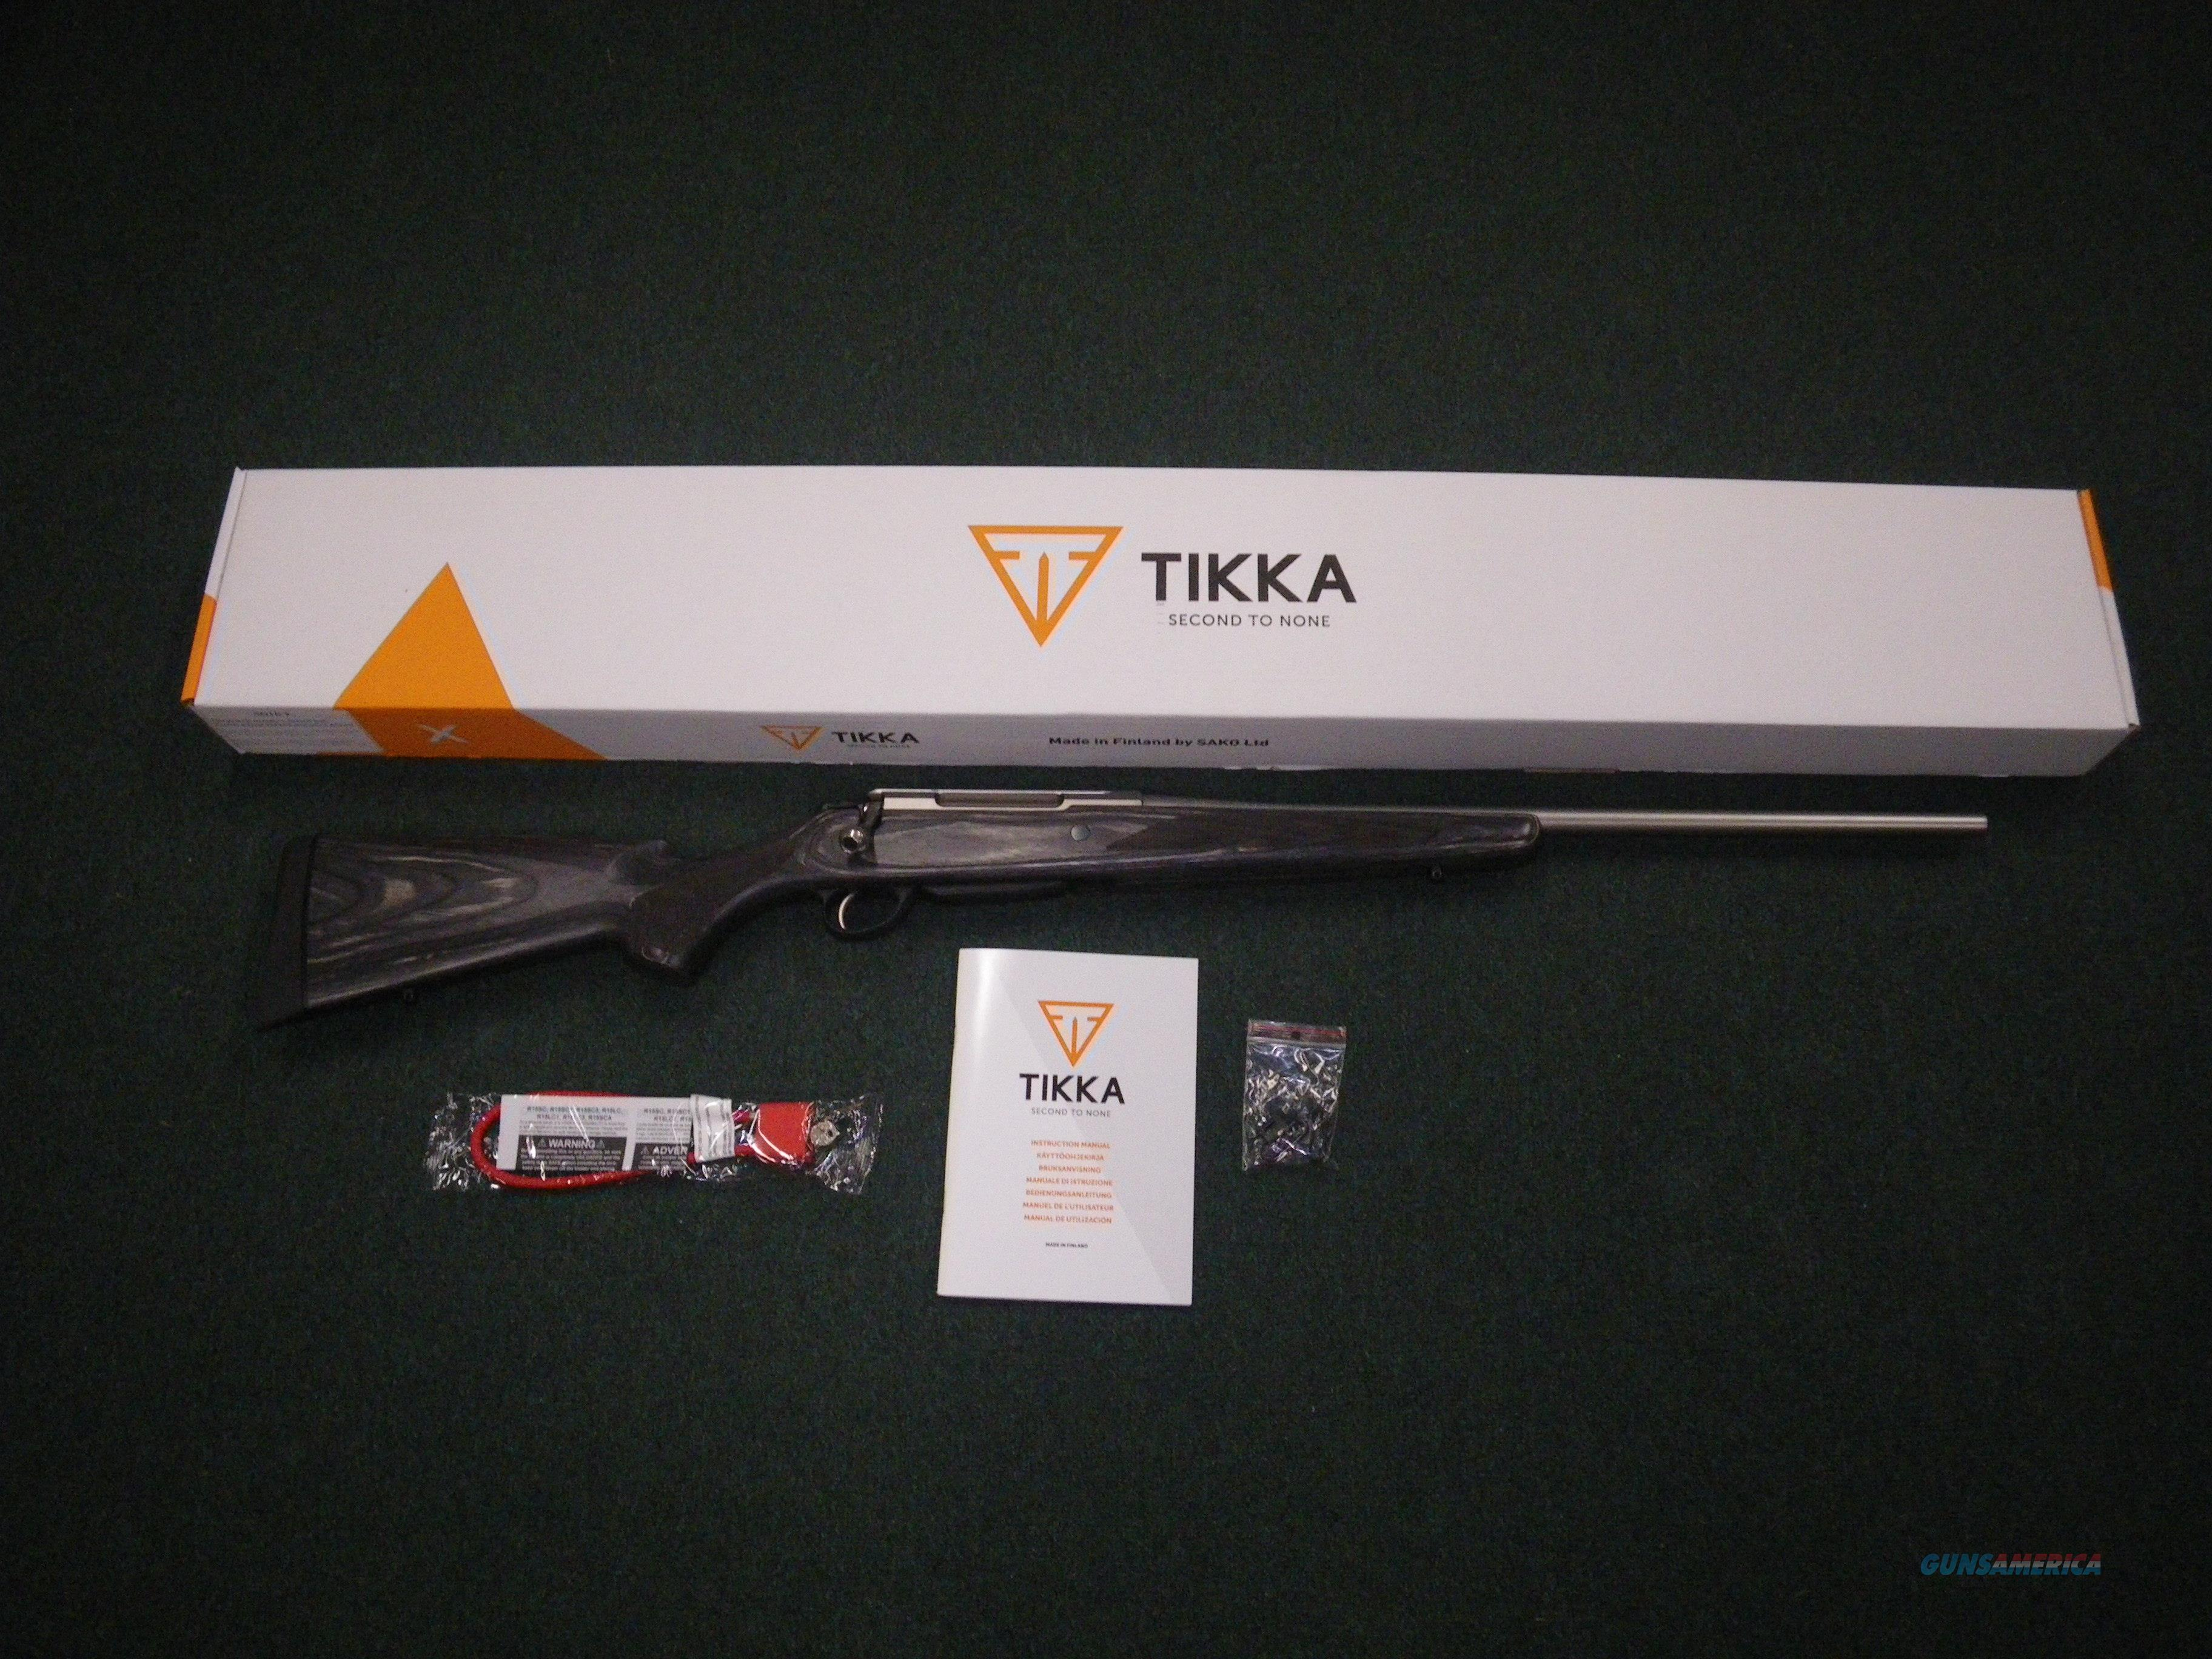 "Tikka T3x Laminated Stainless 7mm Rem Mag 24.3"" NEW #JRTXG370  Guns > Rifles > Tikka Rifles > T3"